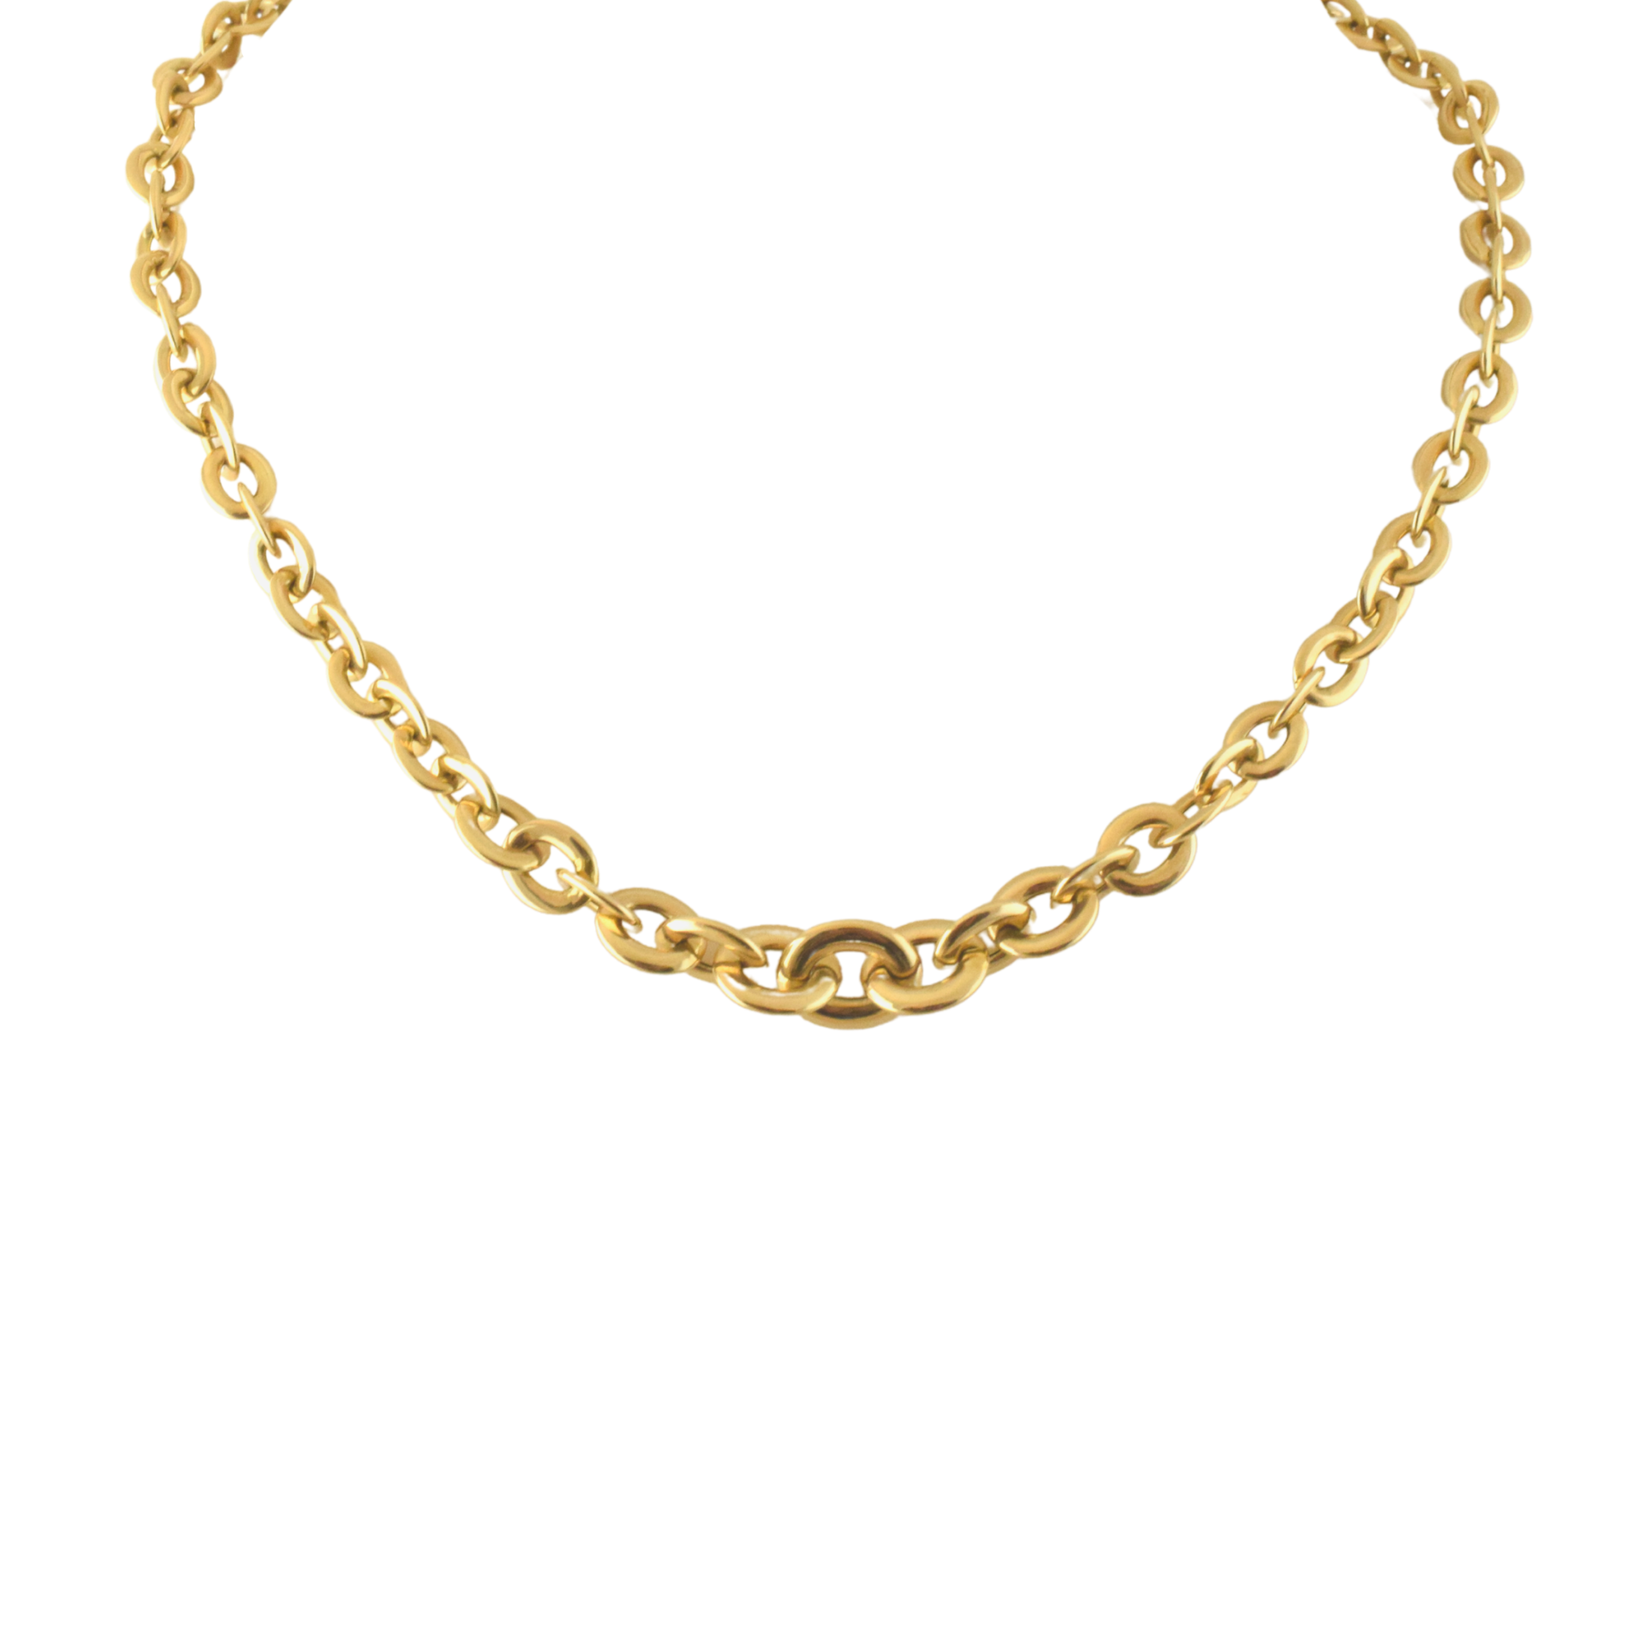 Graduated Gold Link Necklace